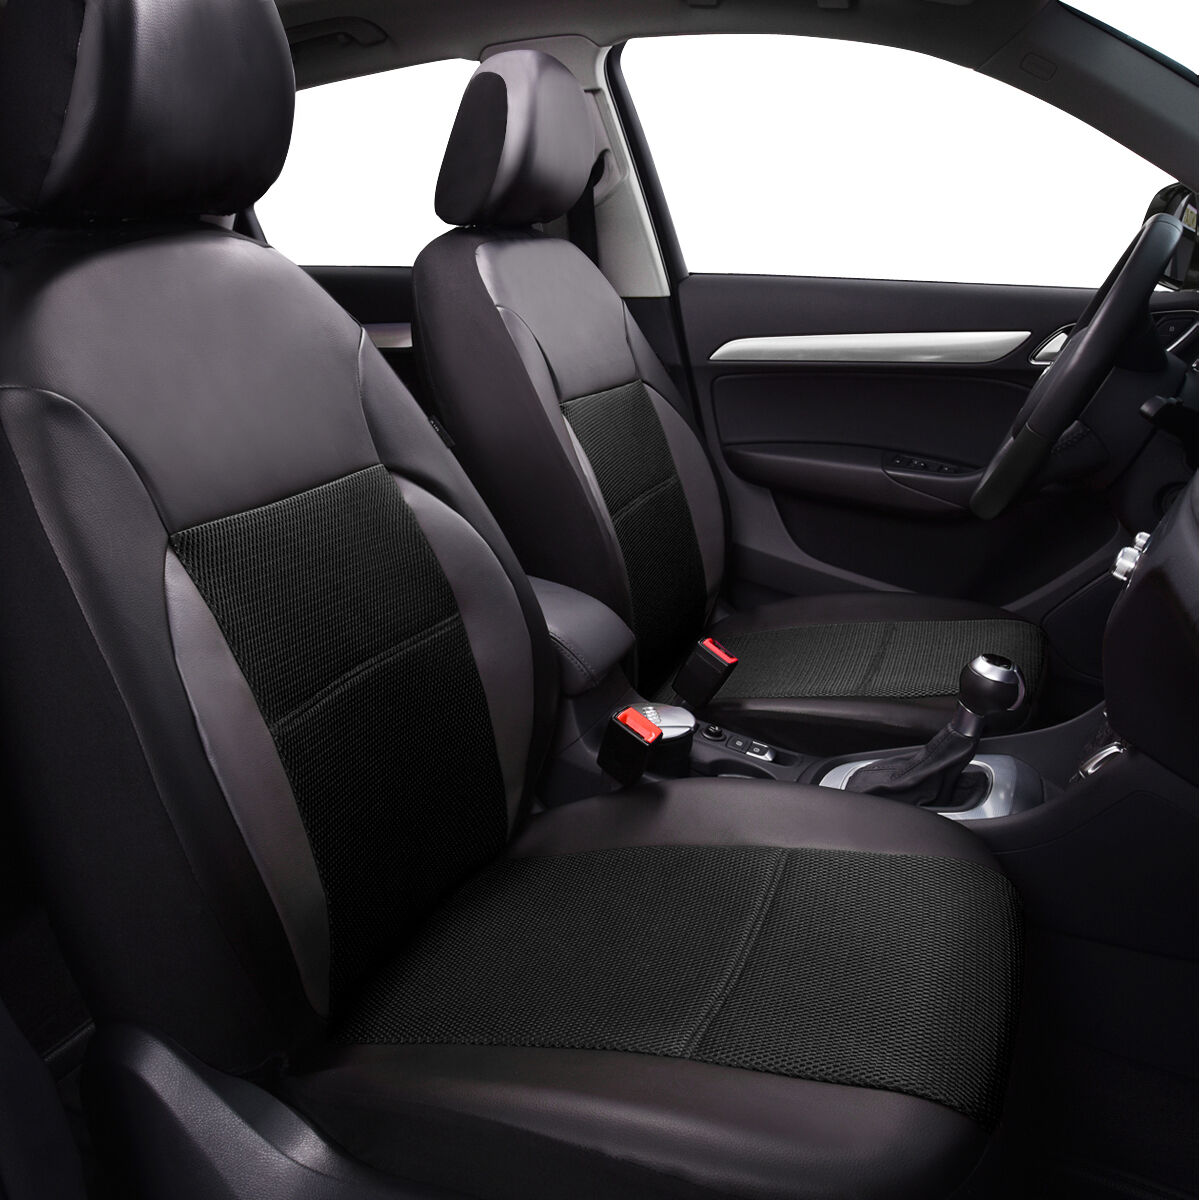 Full Black Breathable PU Leather Universal Fit Car Truck